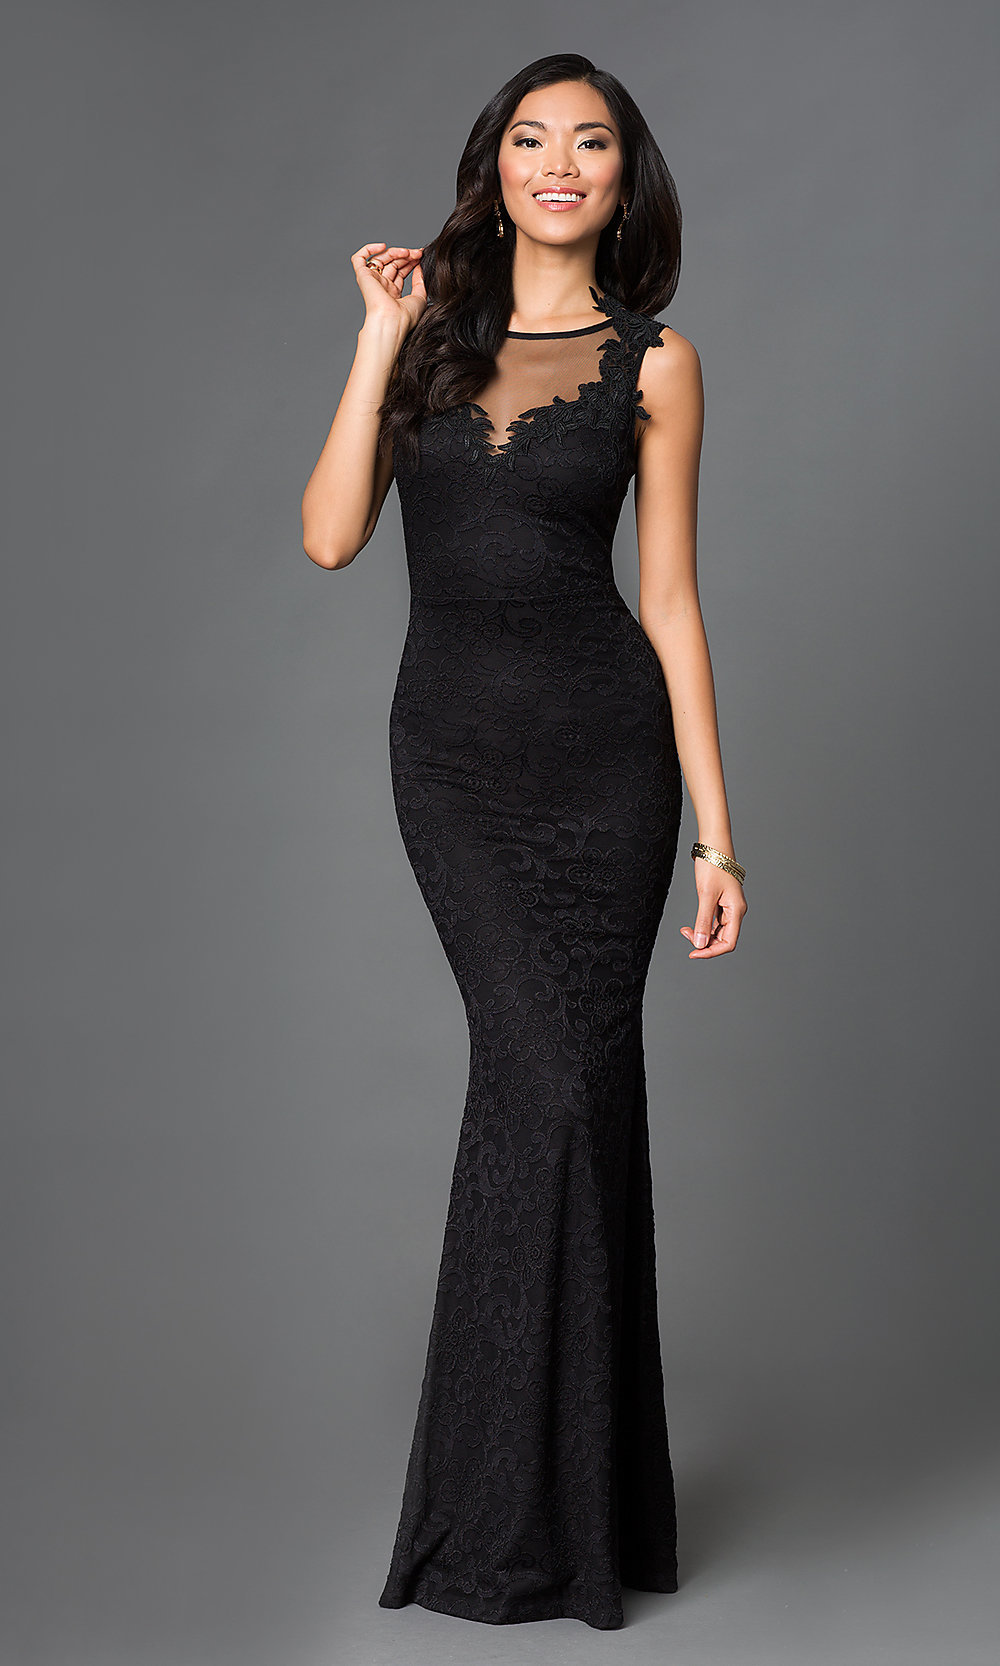 Wedding Long Formal Dress black sleeveless long prom dress promgirl hover to zoom